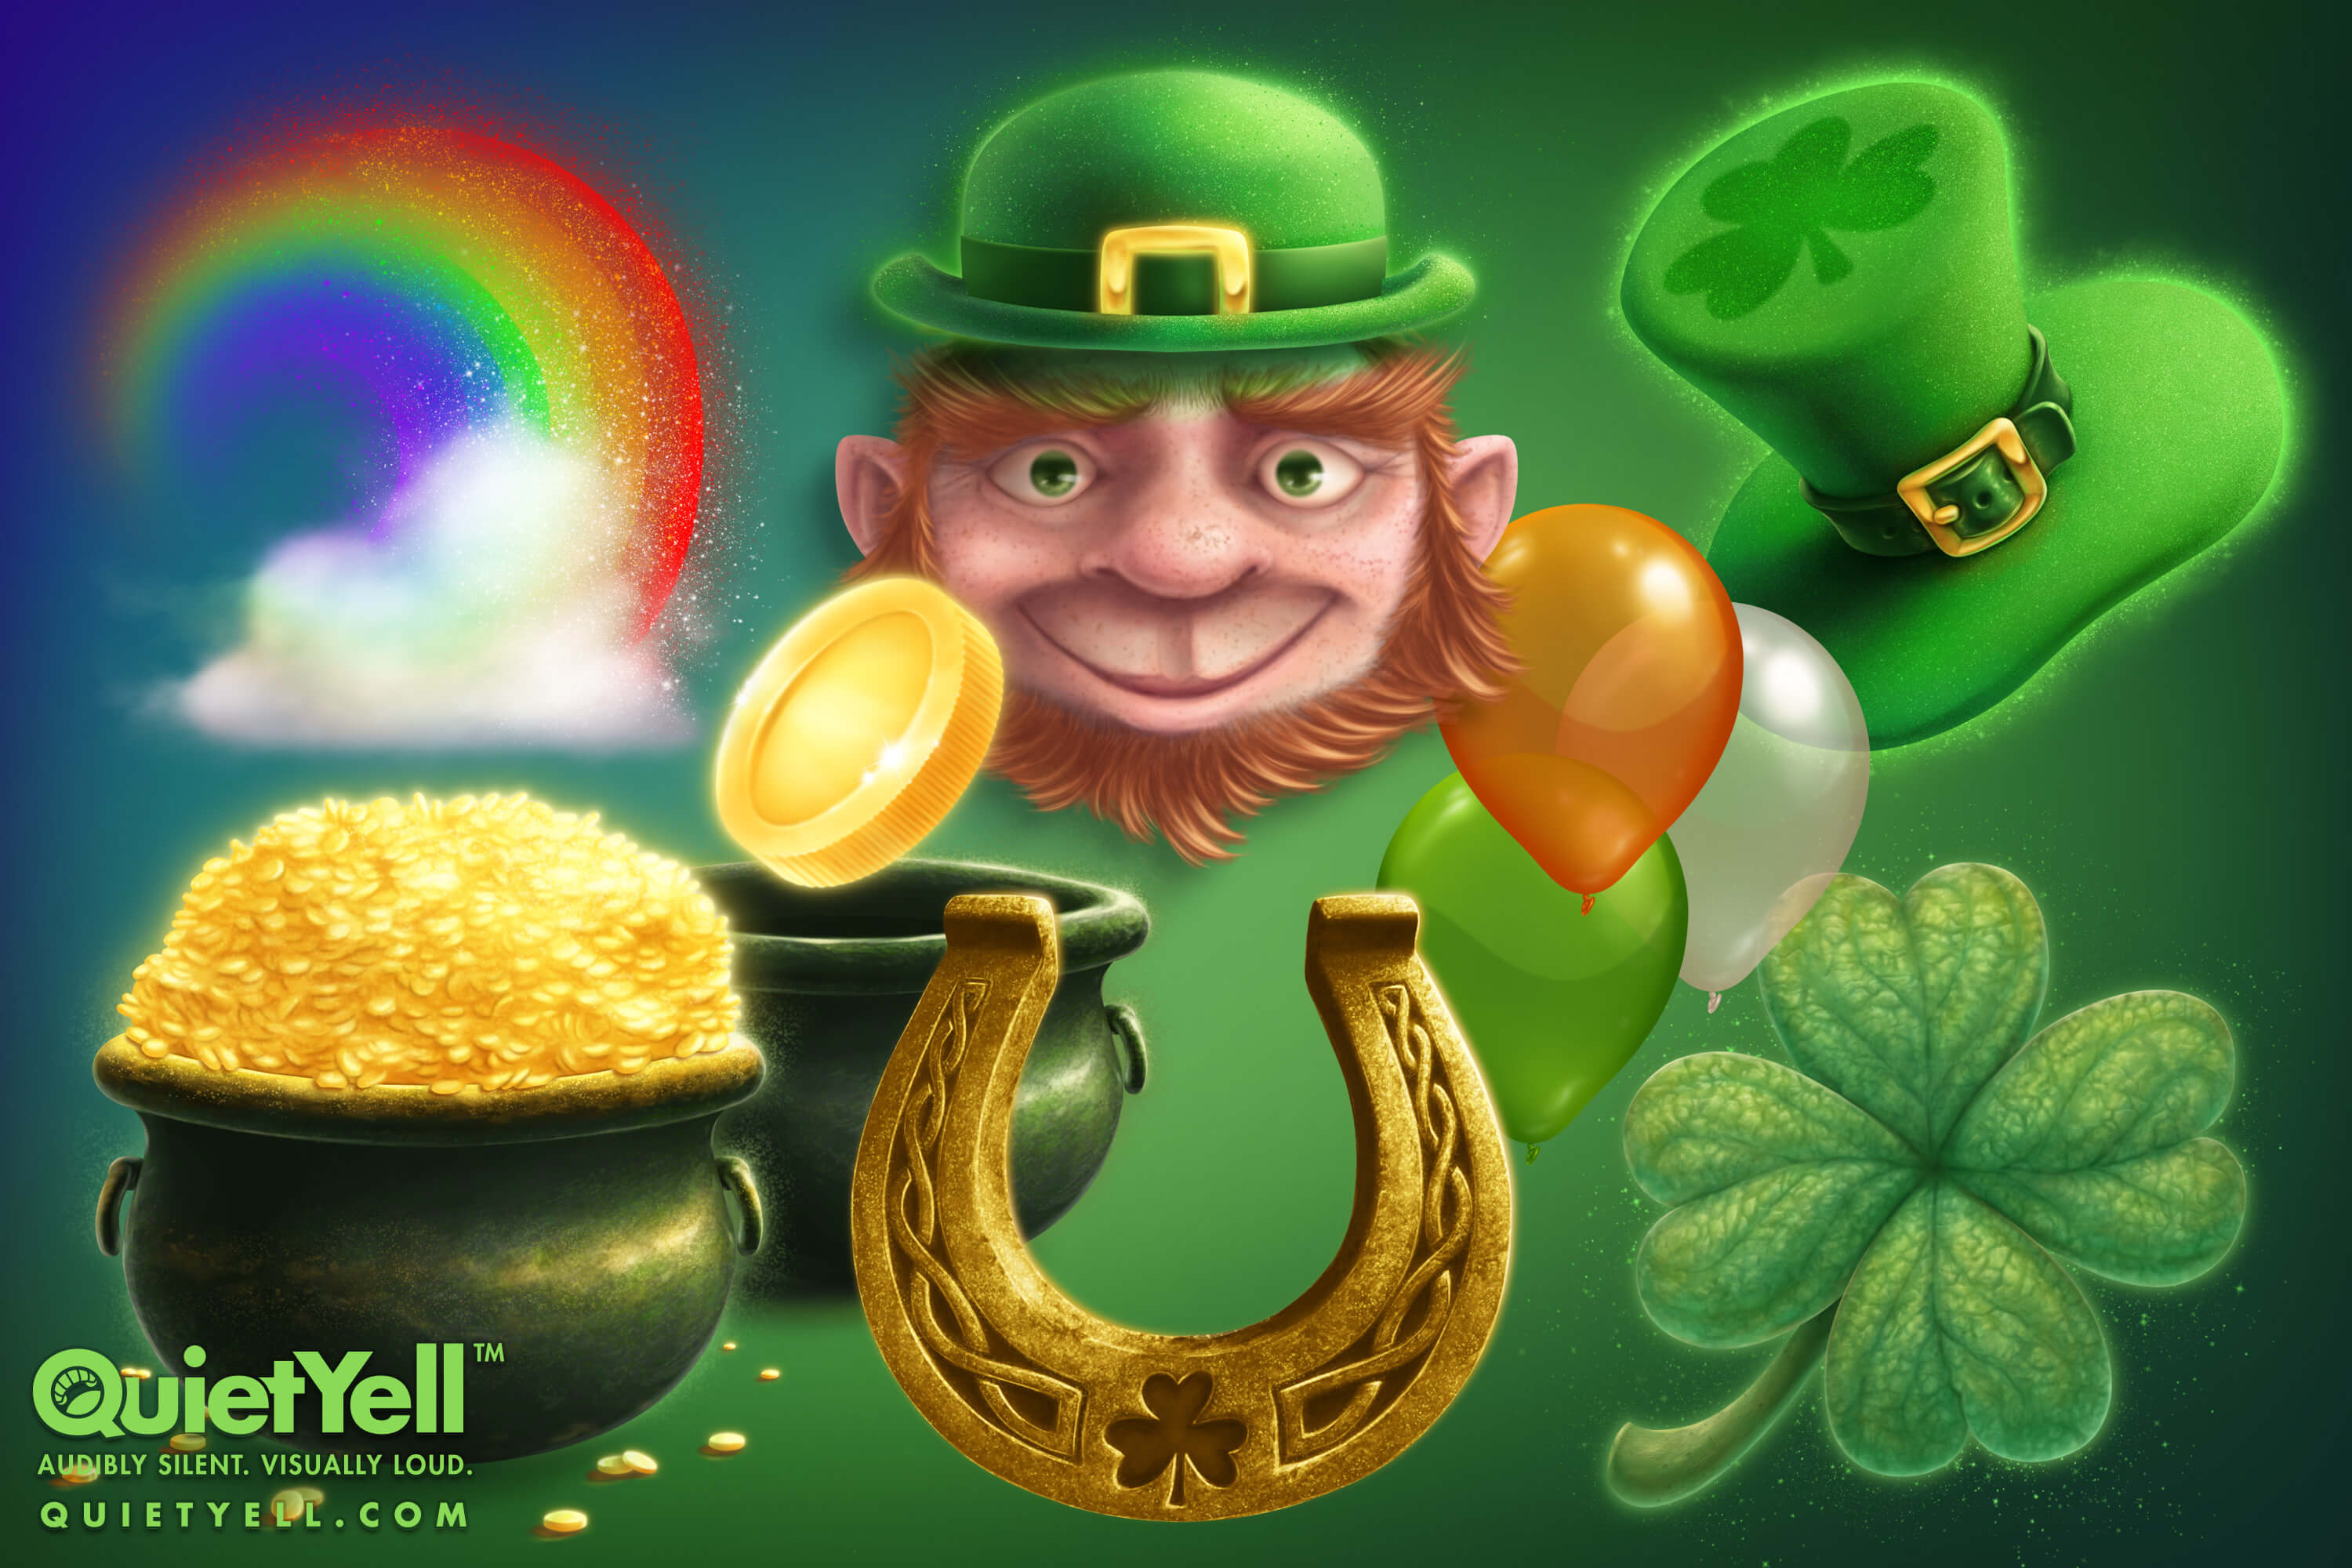 QuietYell Presents Scott Monaco's St. Patrick's Day Game Assets For Cataboom, All Rights Reserved